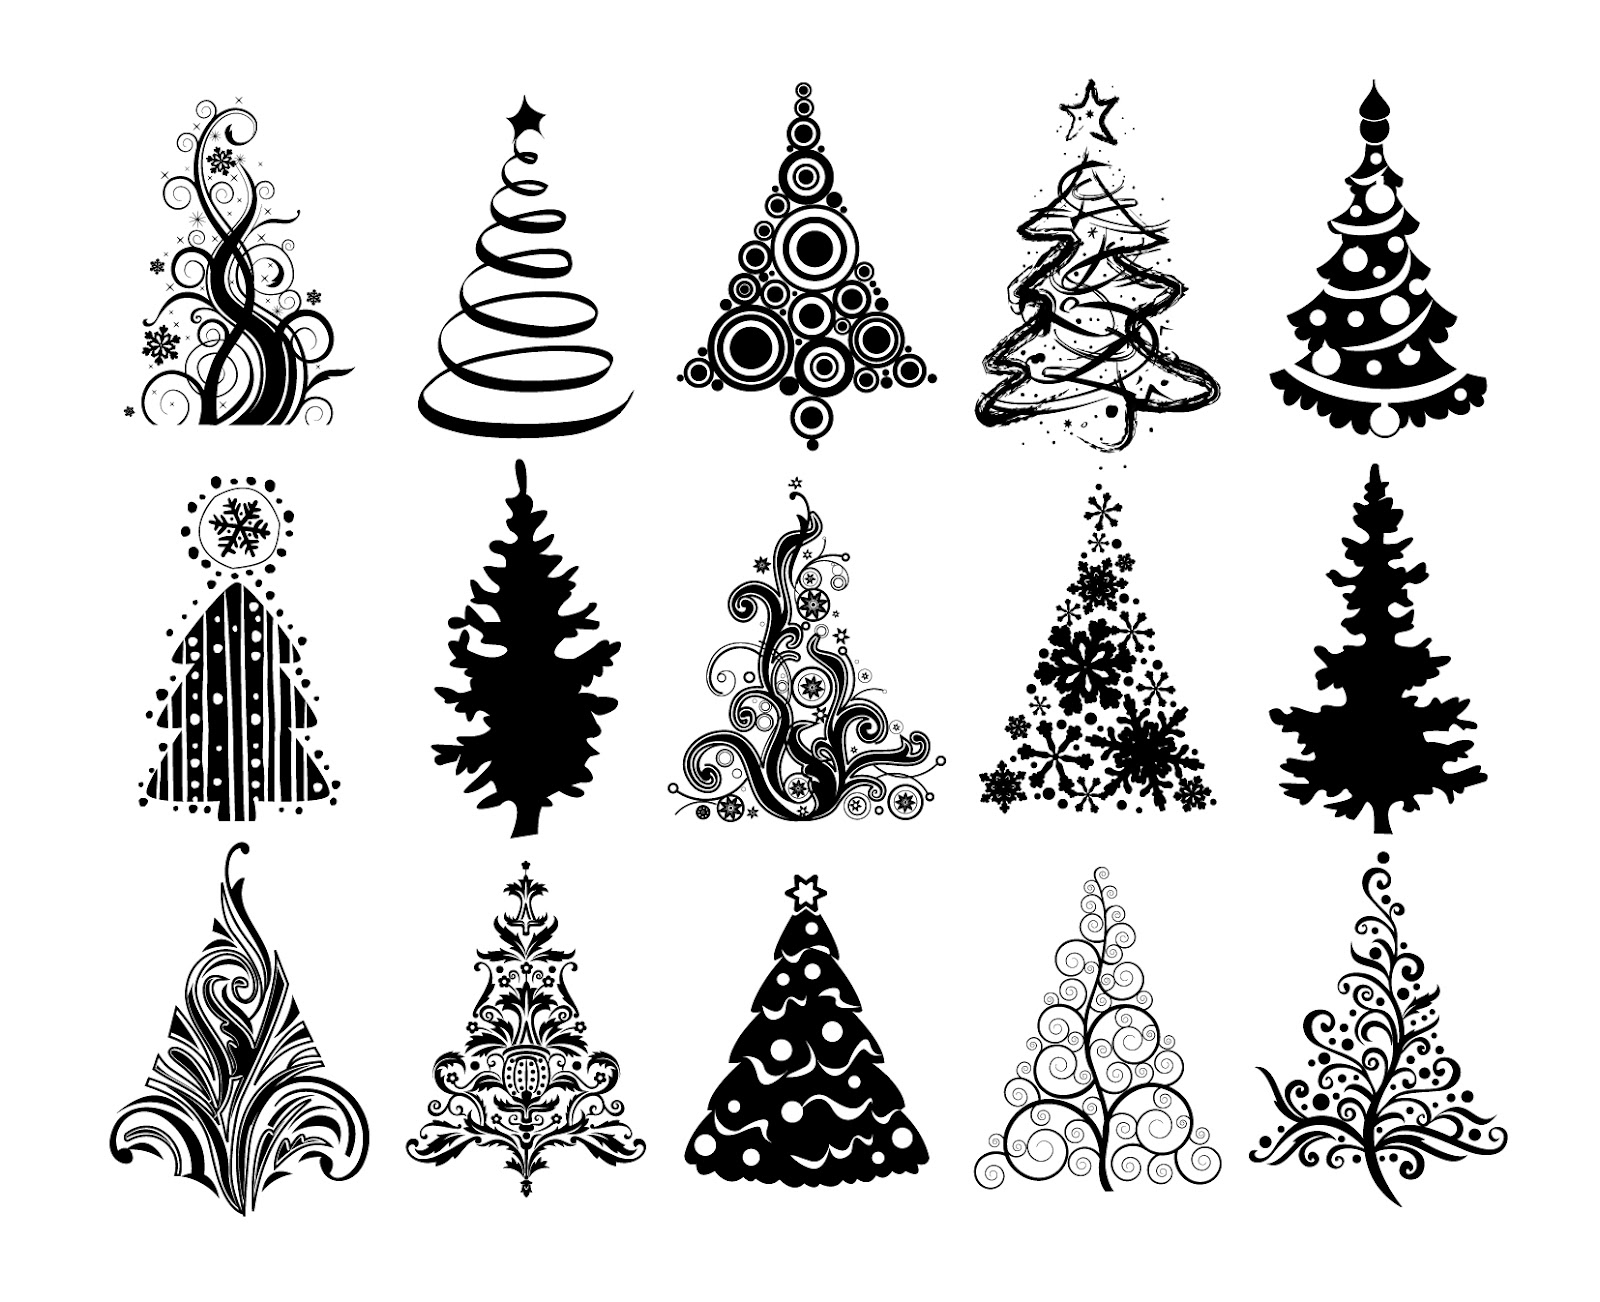 Free vector silhouettes christmas tree images